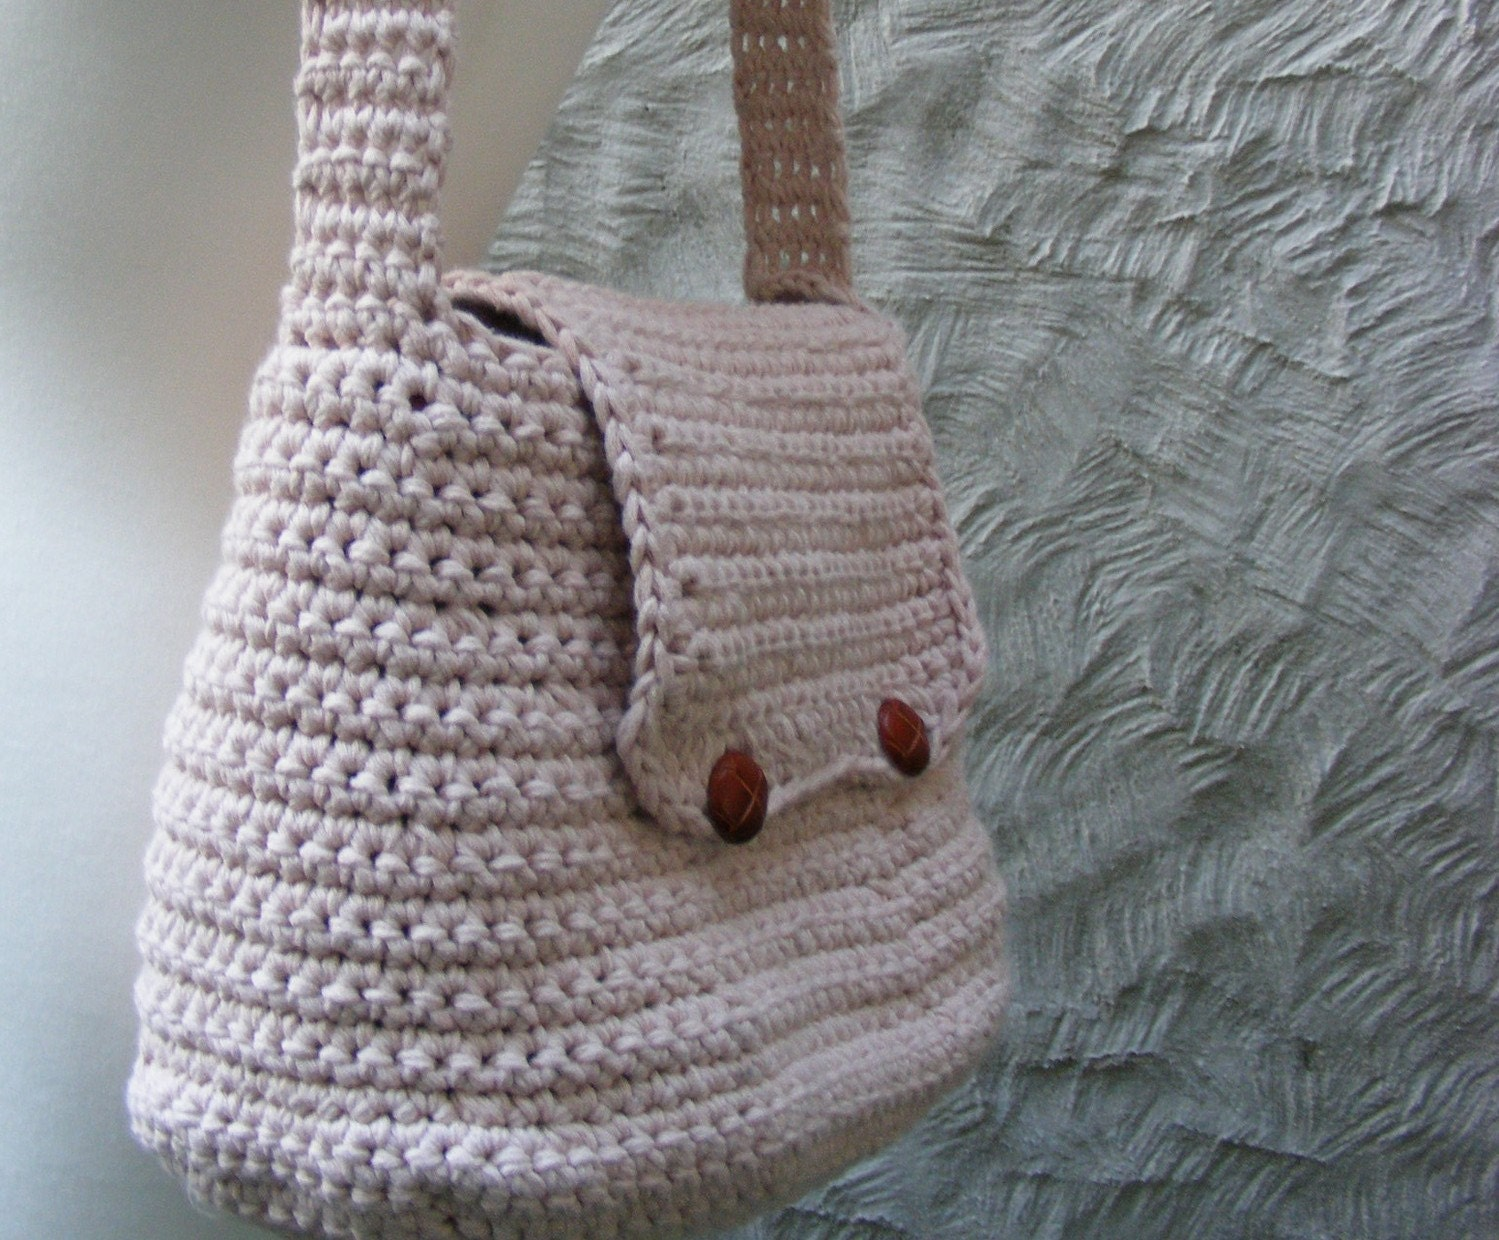 Crochet Patterns For Bags : EASY CROCHET PURSE PATTERNS How To Crochet